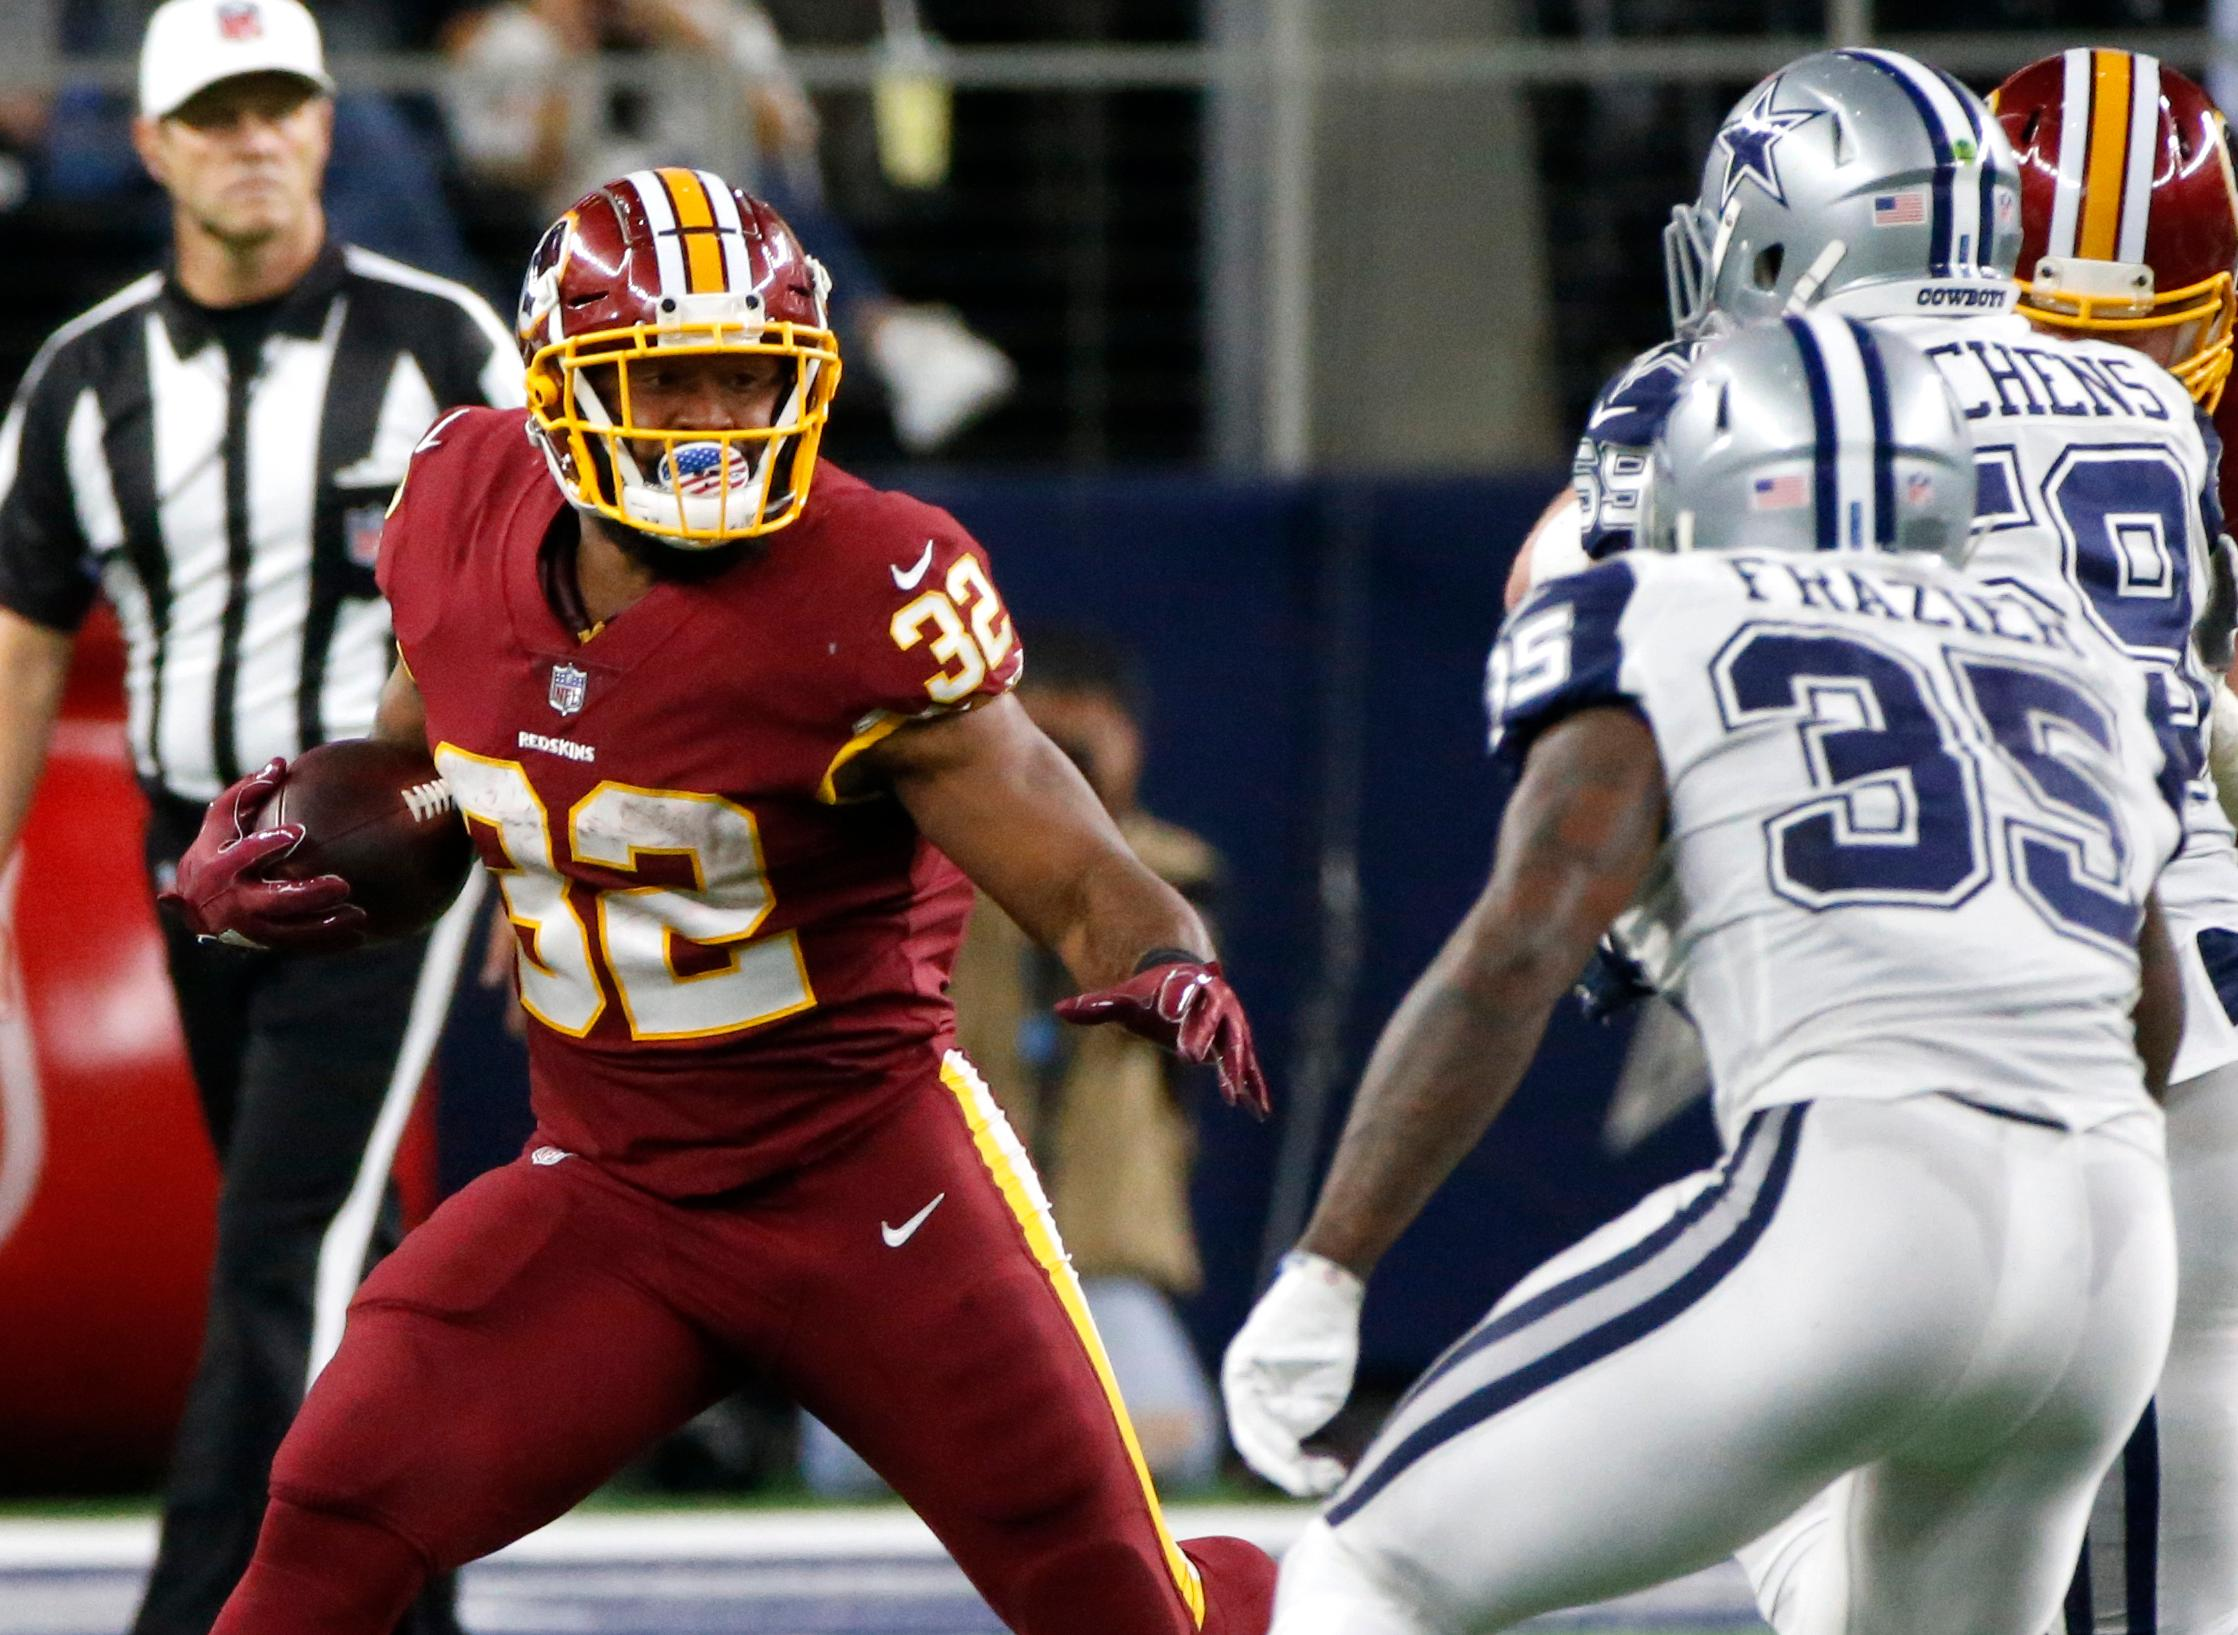 Washington Redskins running back Samaje Perine (32) carries the ball as Dallas Cowboys safety Kavon Frazier (35) and Anthony Hitchens, right rear, defend in the second half of an NFL football game, Thursday, Nov. 30, 2017, in Arlington, Texas. (AP Photo/Michael Ainsworth)